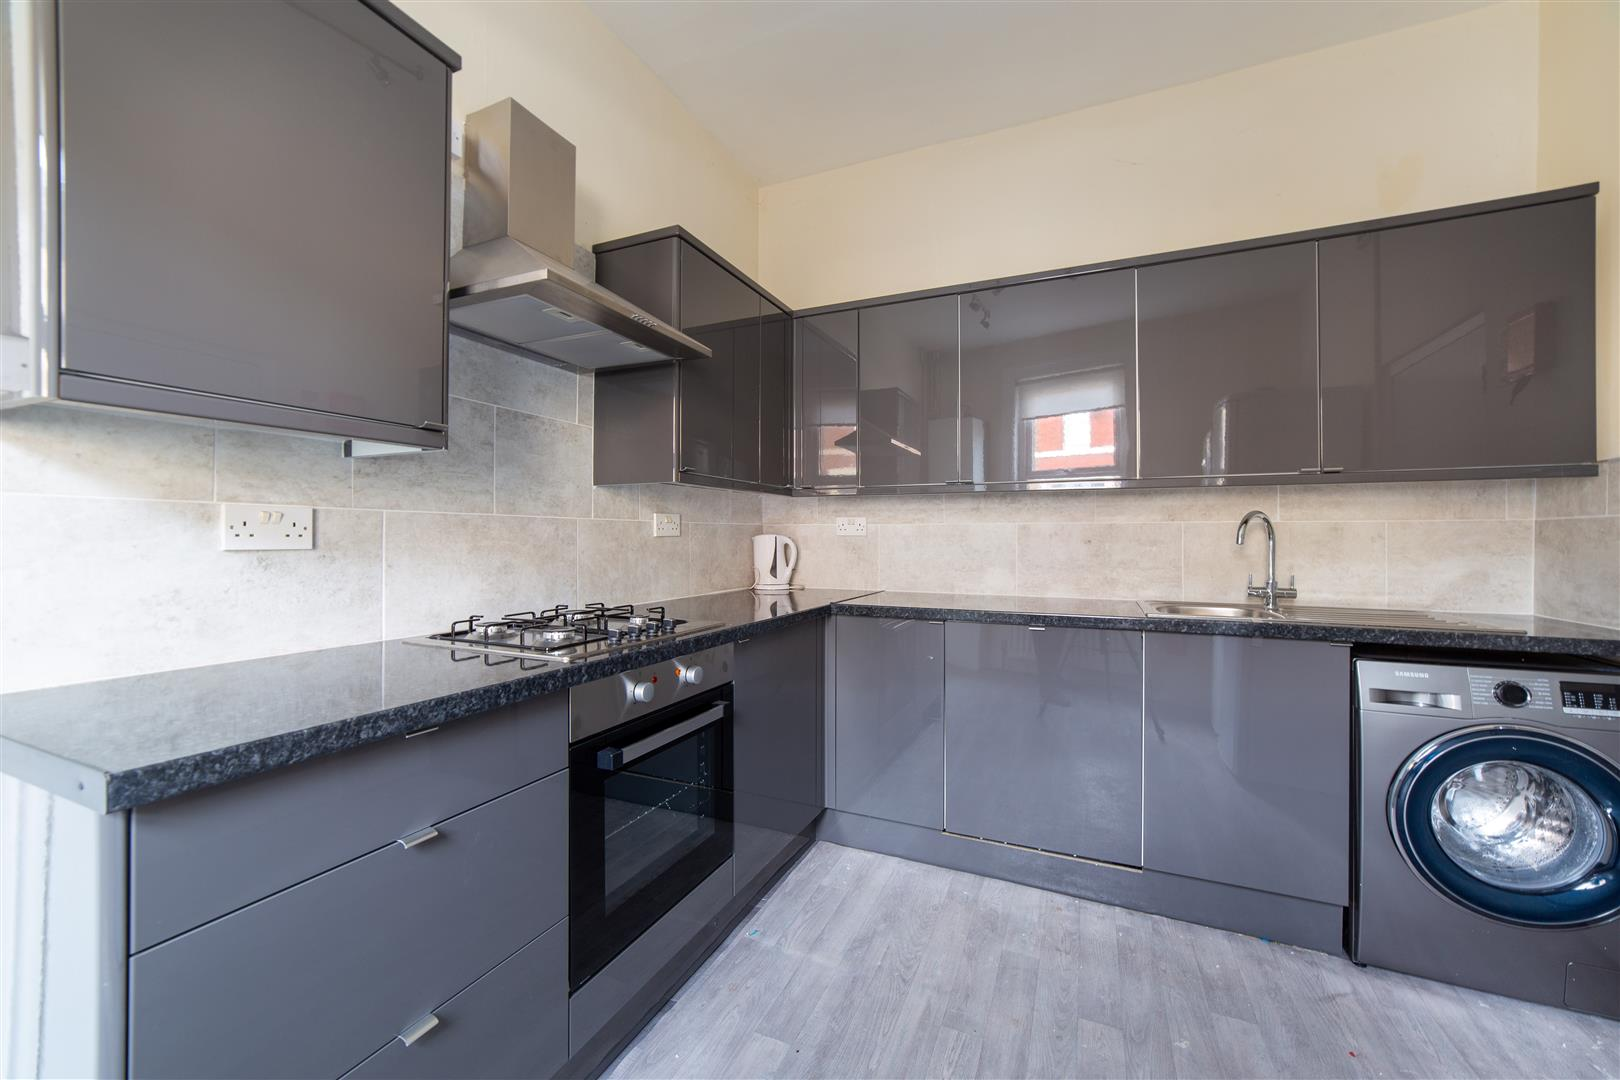 6 bed end of terrace house to rent in Newcastle Upon Tyne, NE2 1NQ, NE2